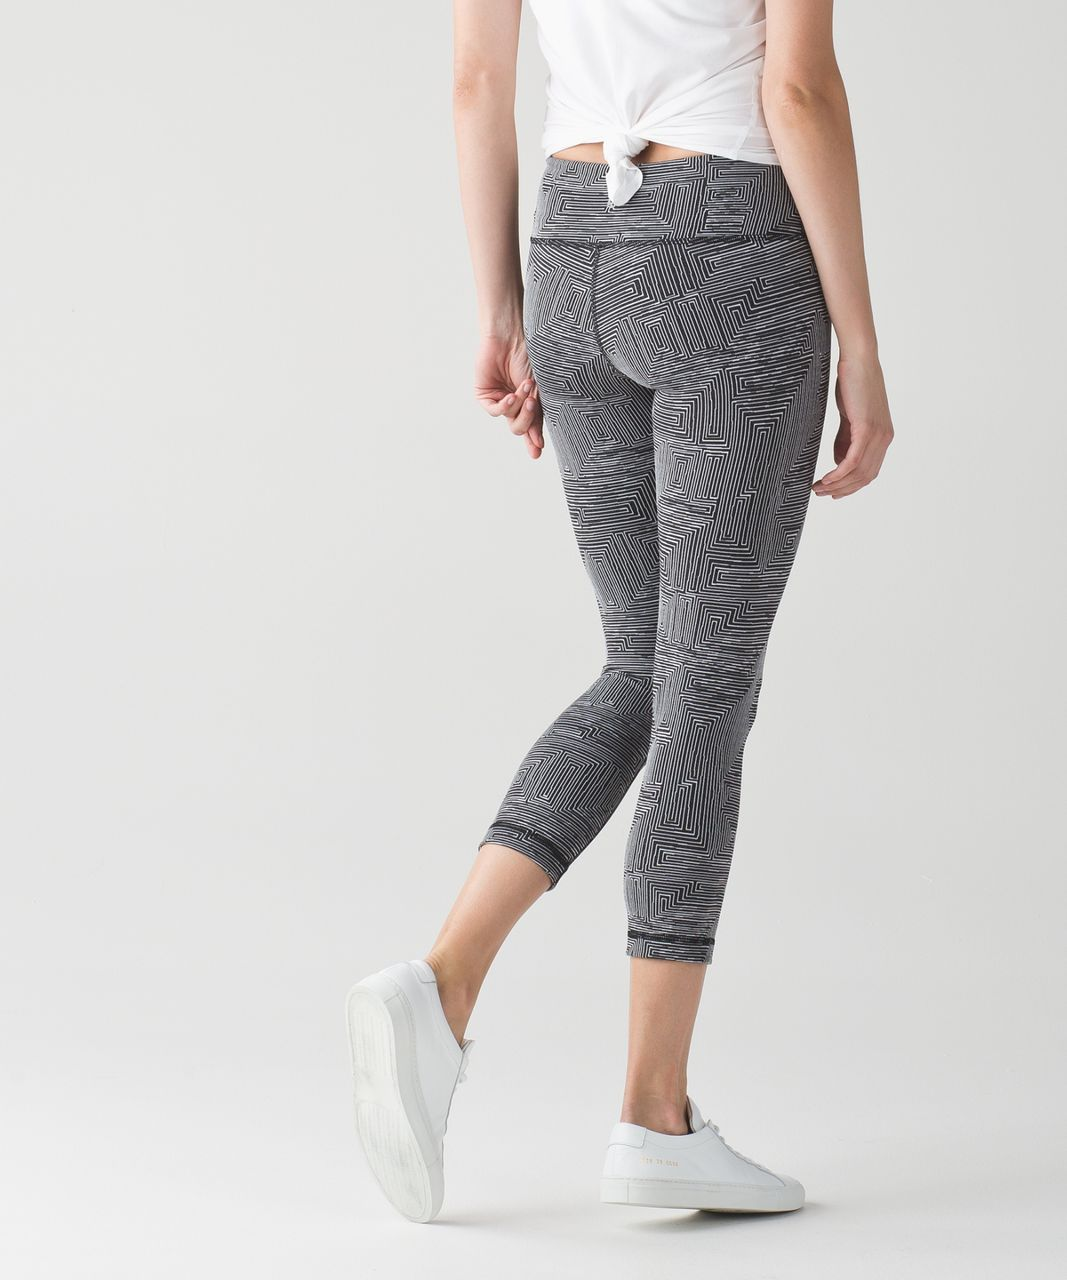 Lululemon Wunder Under Crop III - Maze Jacquard White Black